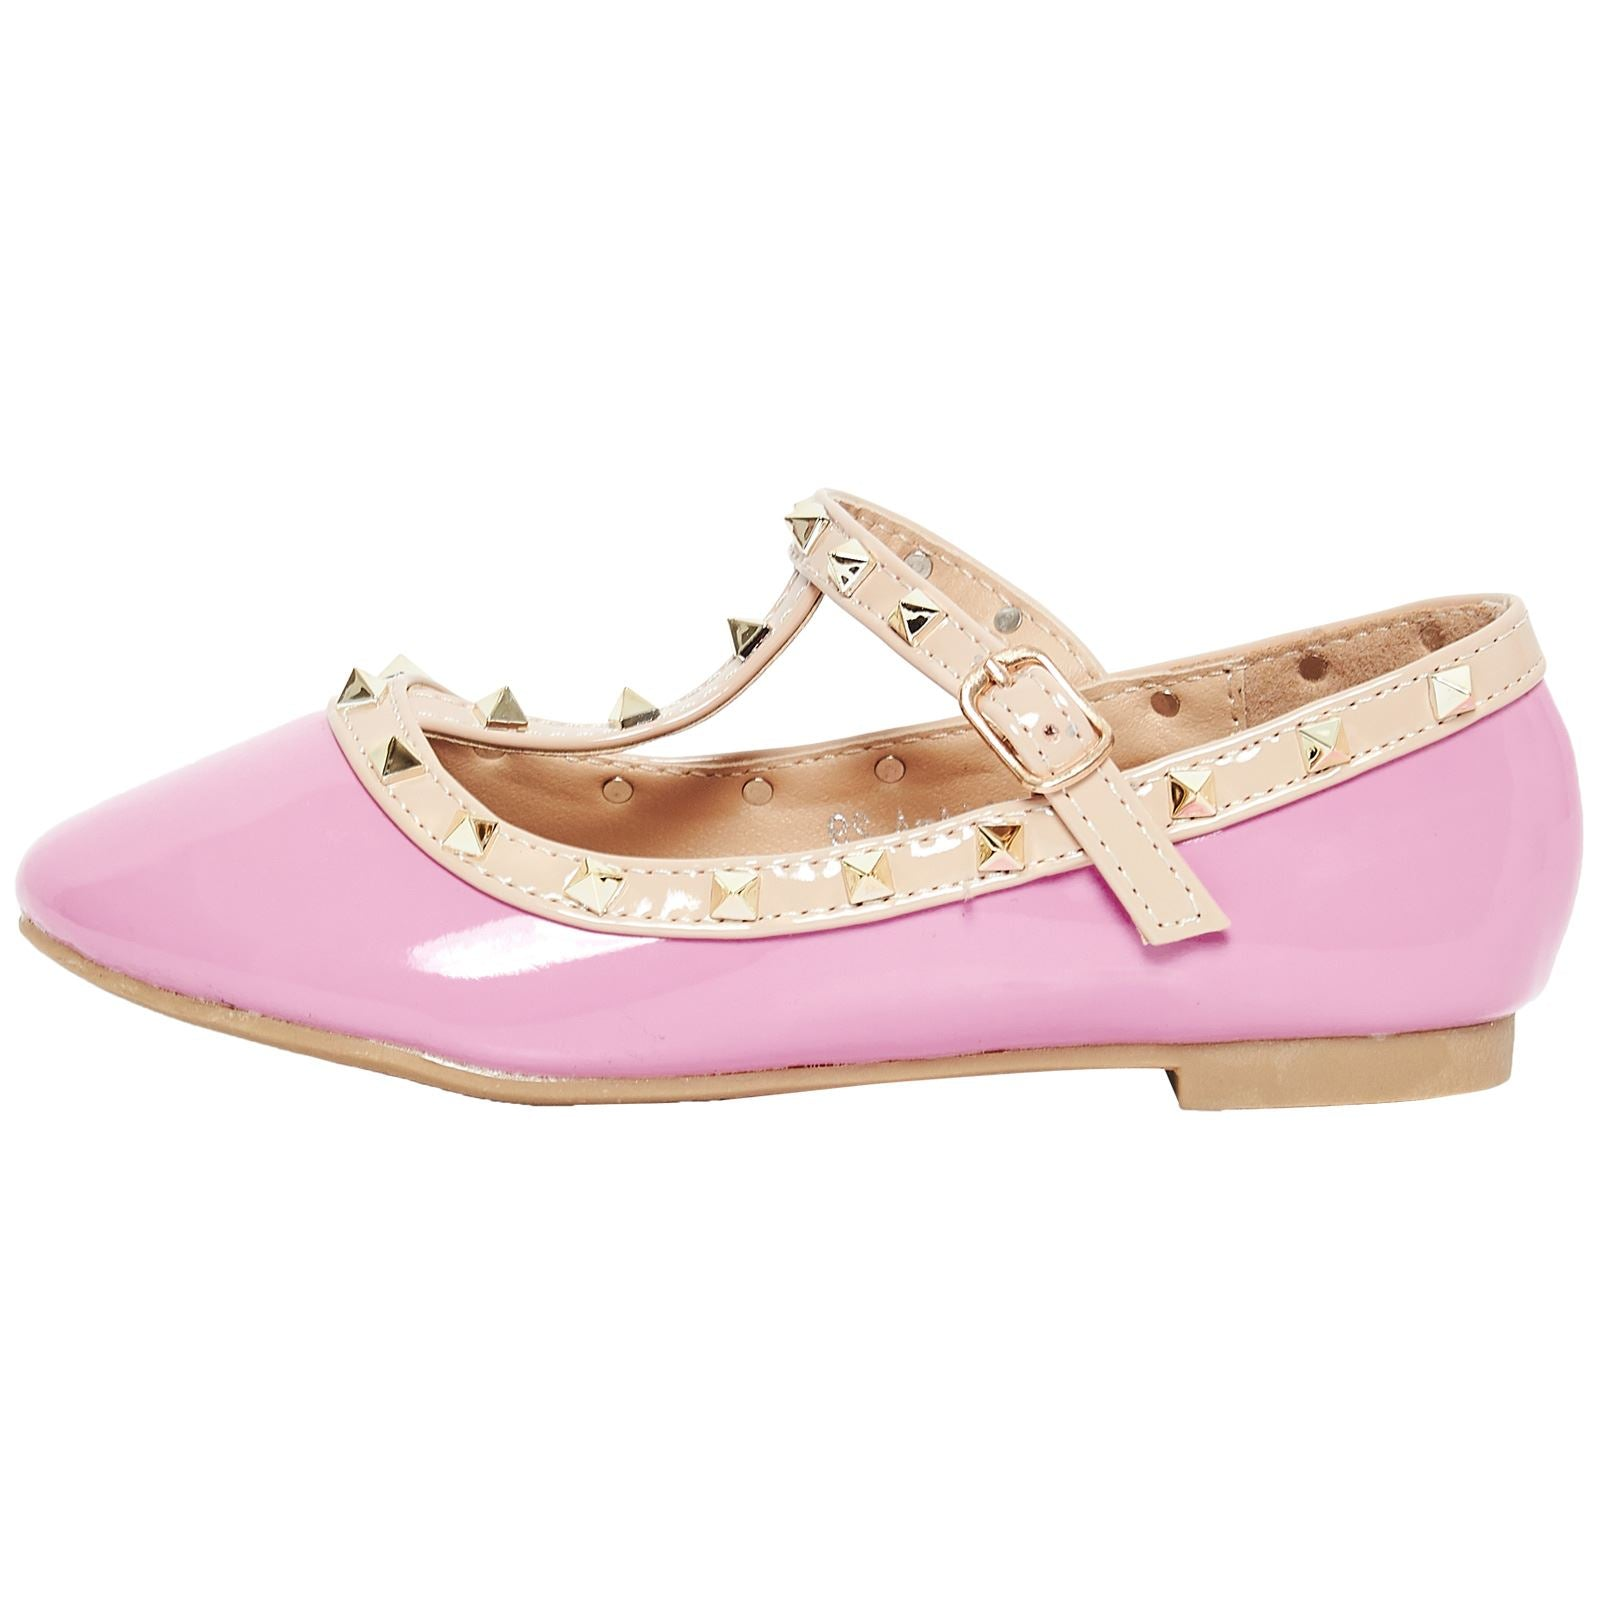 Marleigh Girls Studded T-Strap Flat Shoes in Pink Patent